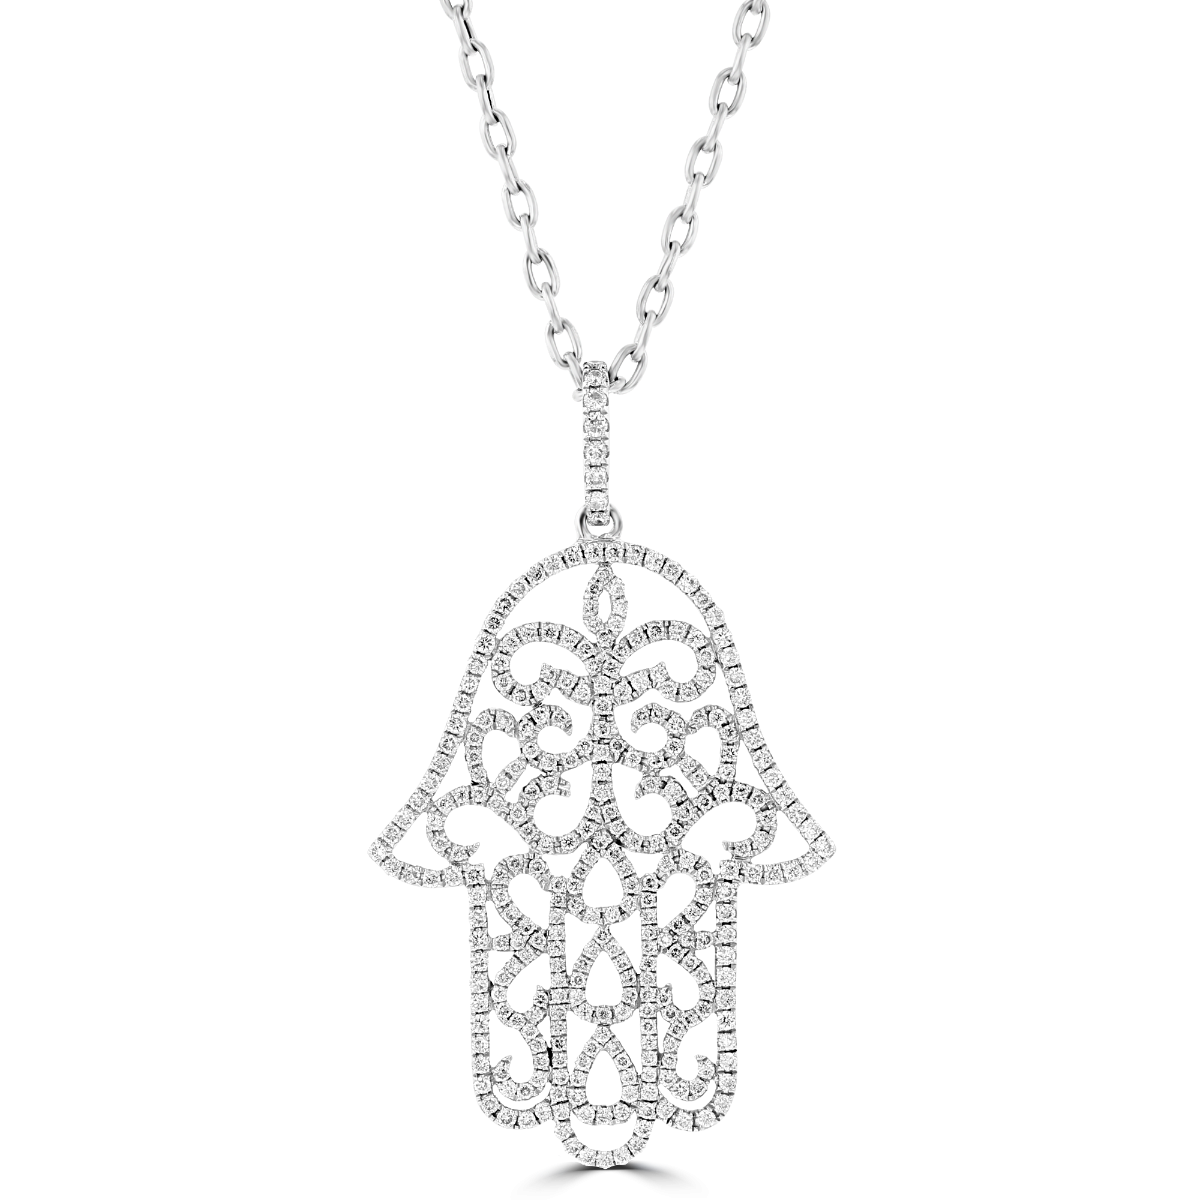 0a0ed60ab67f2 14KT White Gold .85 CTW Pave Diamond Hamsa Necklace in 2019 ...